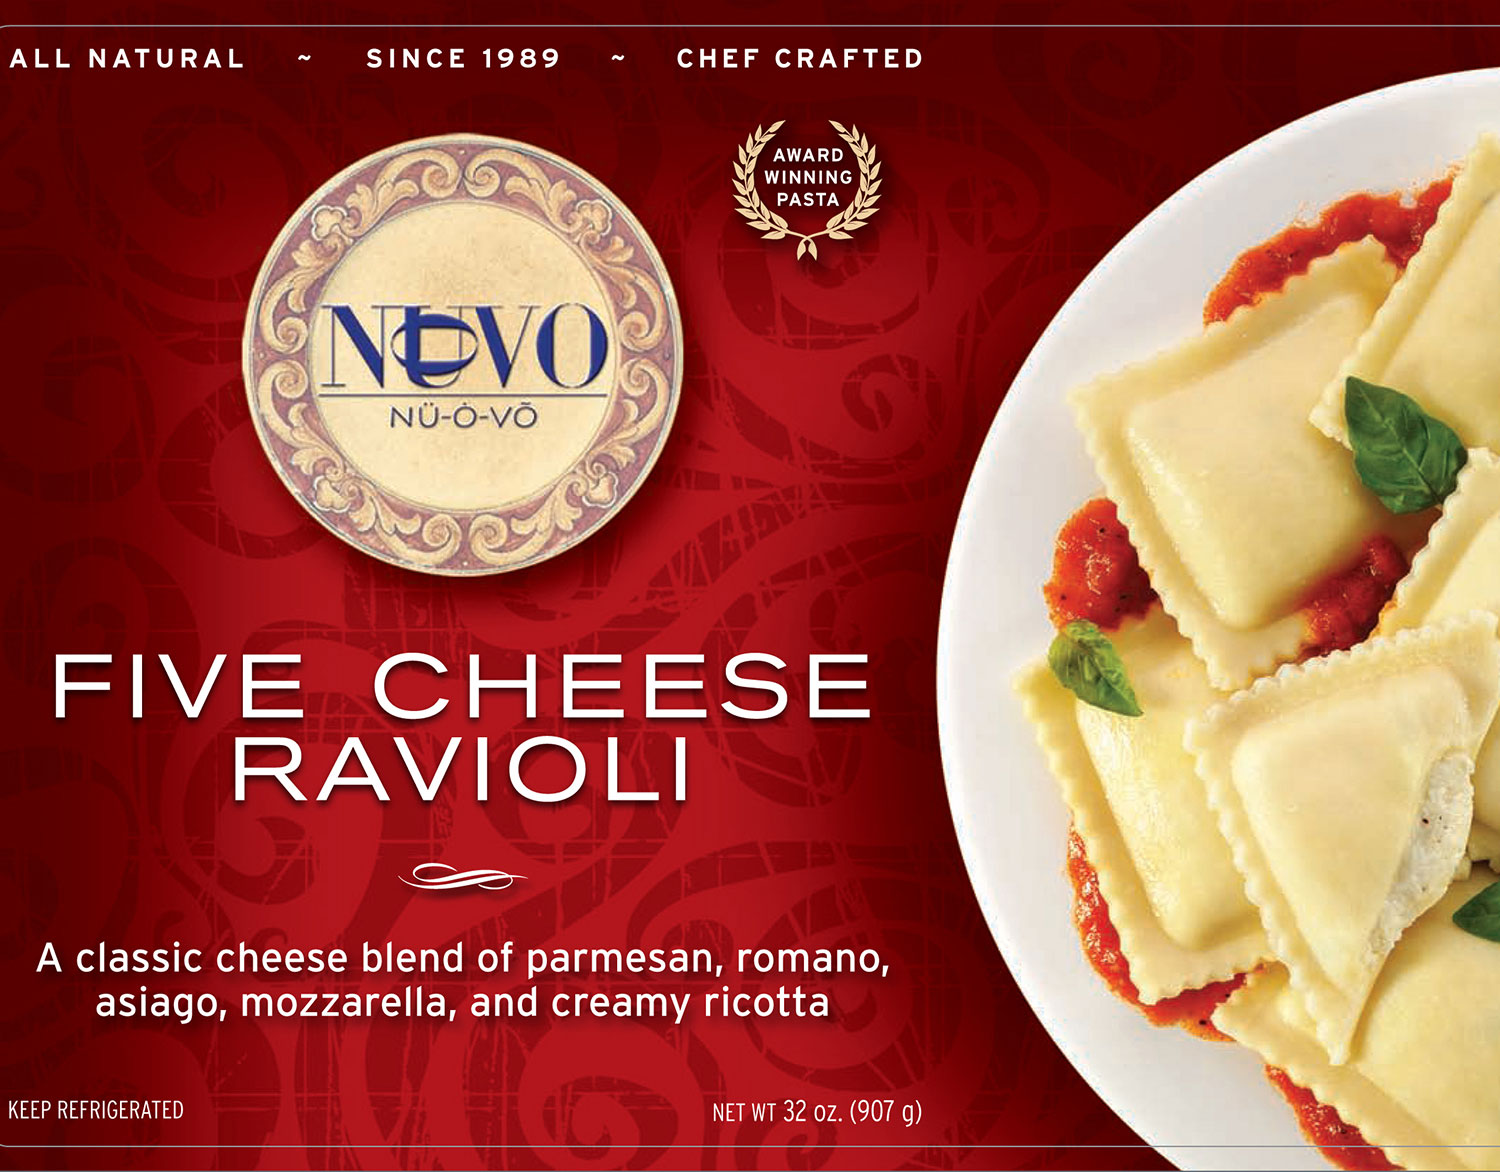 NUOVO-PASTA-RAVIOLI-PACKAGING-SLIDE.jpg